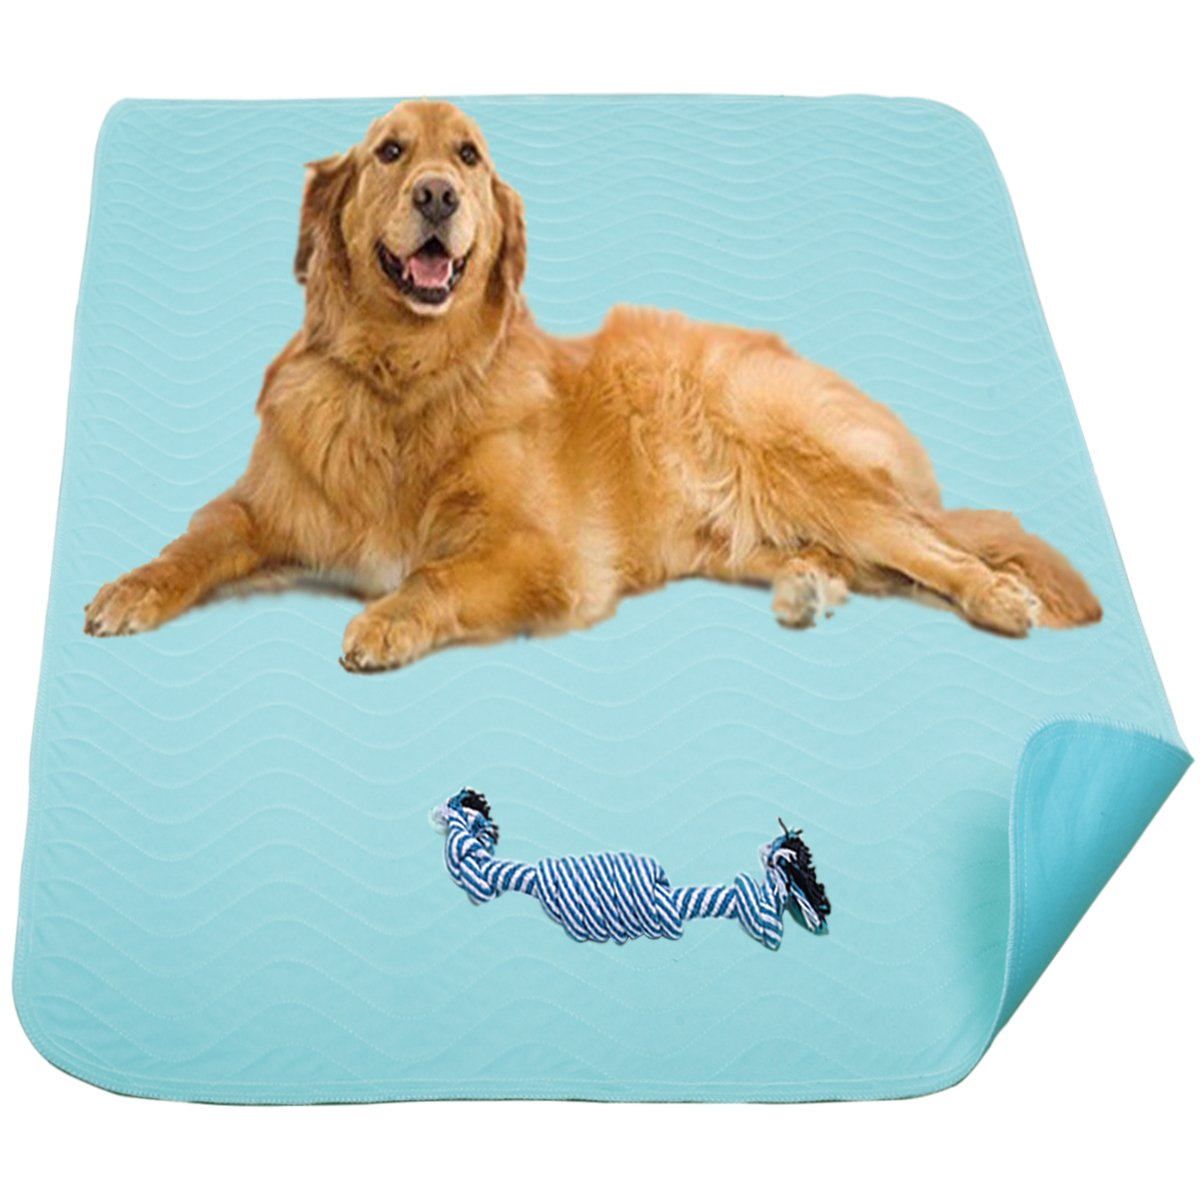 Washable Pee Pads for Dogs, 2 Pack Super Absorbent Reusable Pet Puppy Training Mat with Cotton Dog Chew Toy, 4-layer Impermeable, Quick-Dry, Machine Washable 36'' x 31''